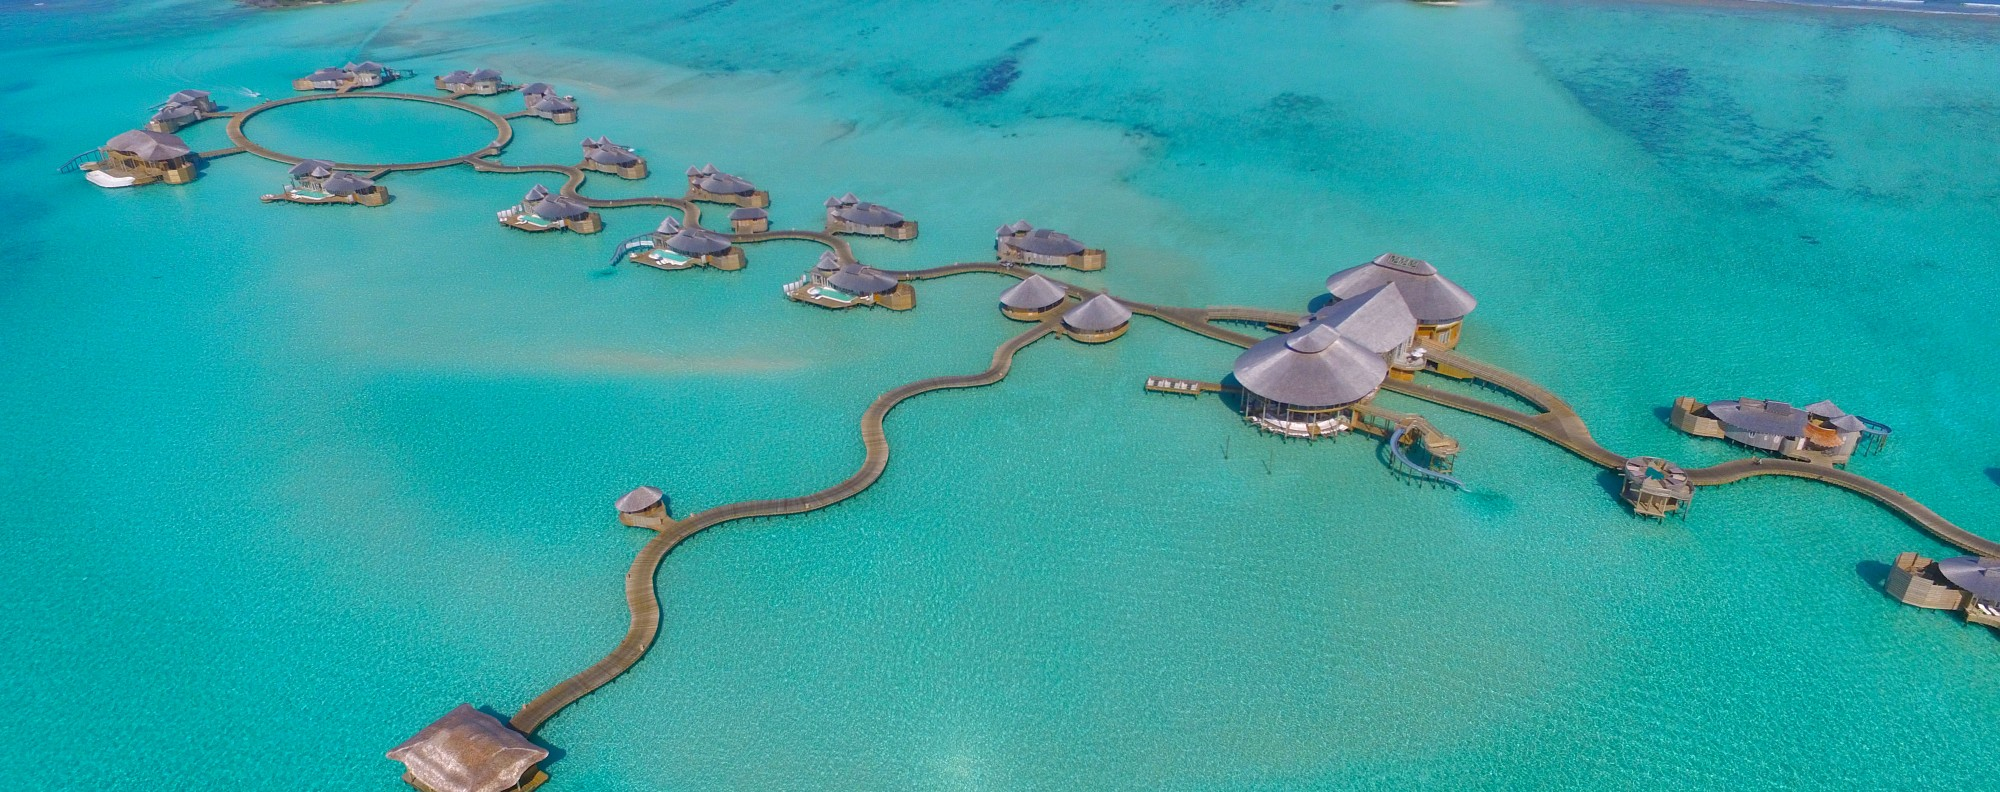 Soneva Jani, a resort in the Maldives, joins a string of new luxury hotels that prioritise sustainability